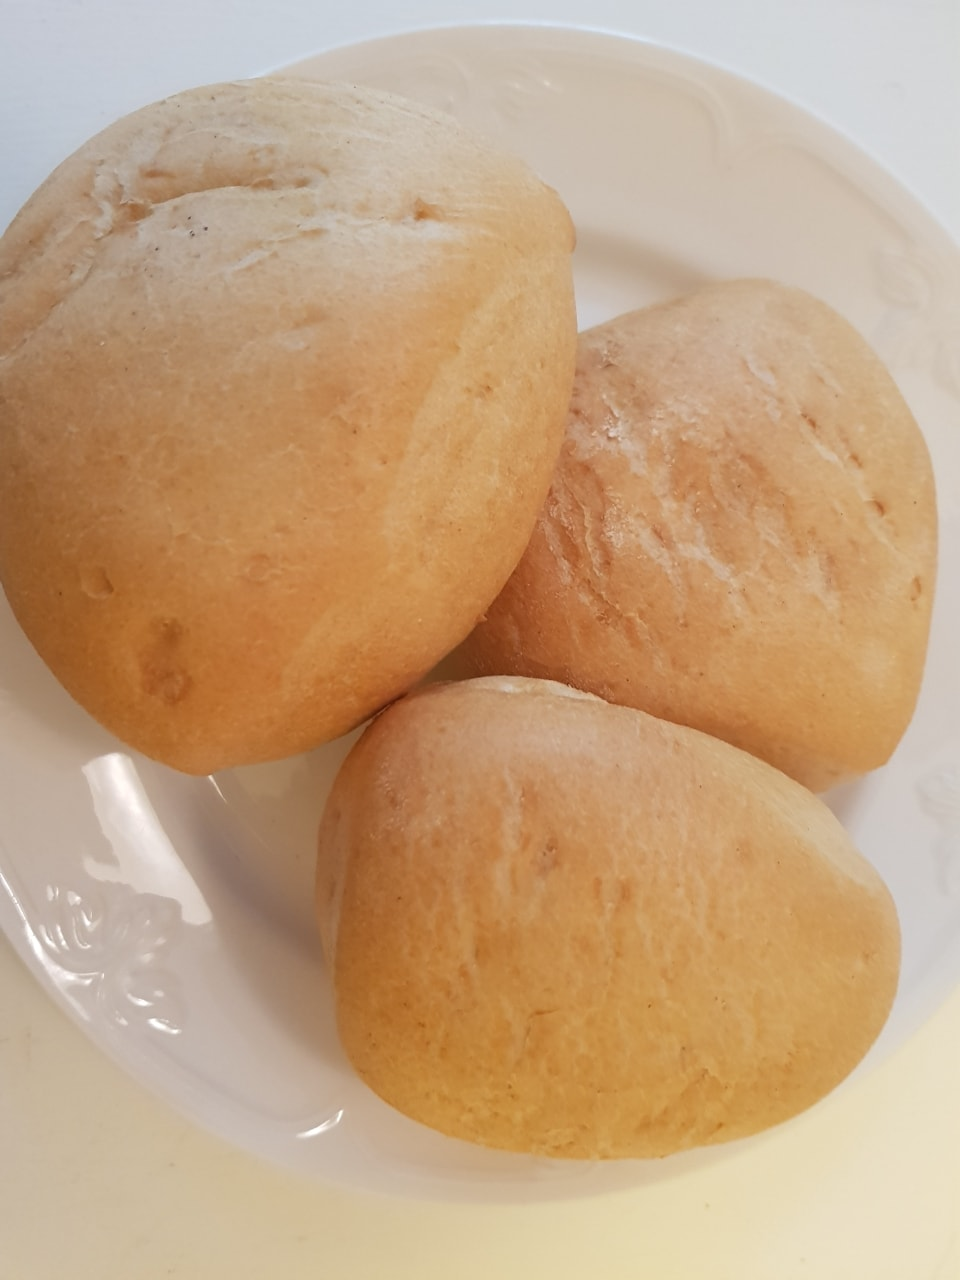 In the freezer - Bread rolls from Lindqvist